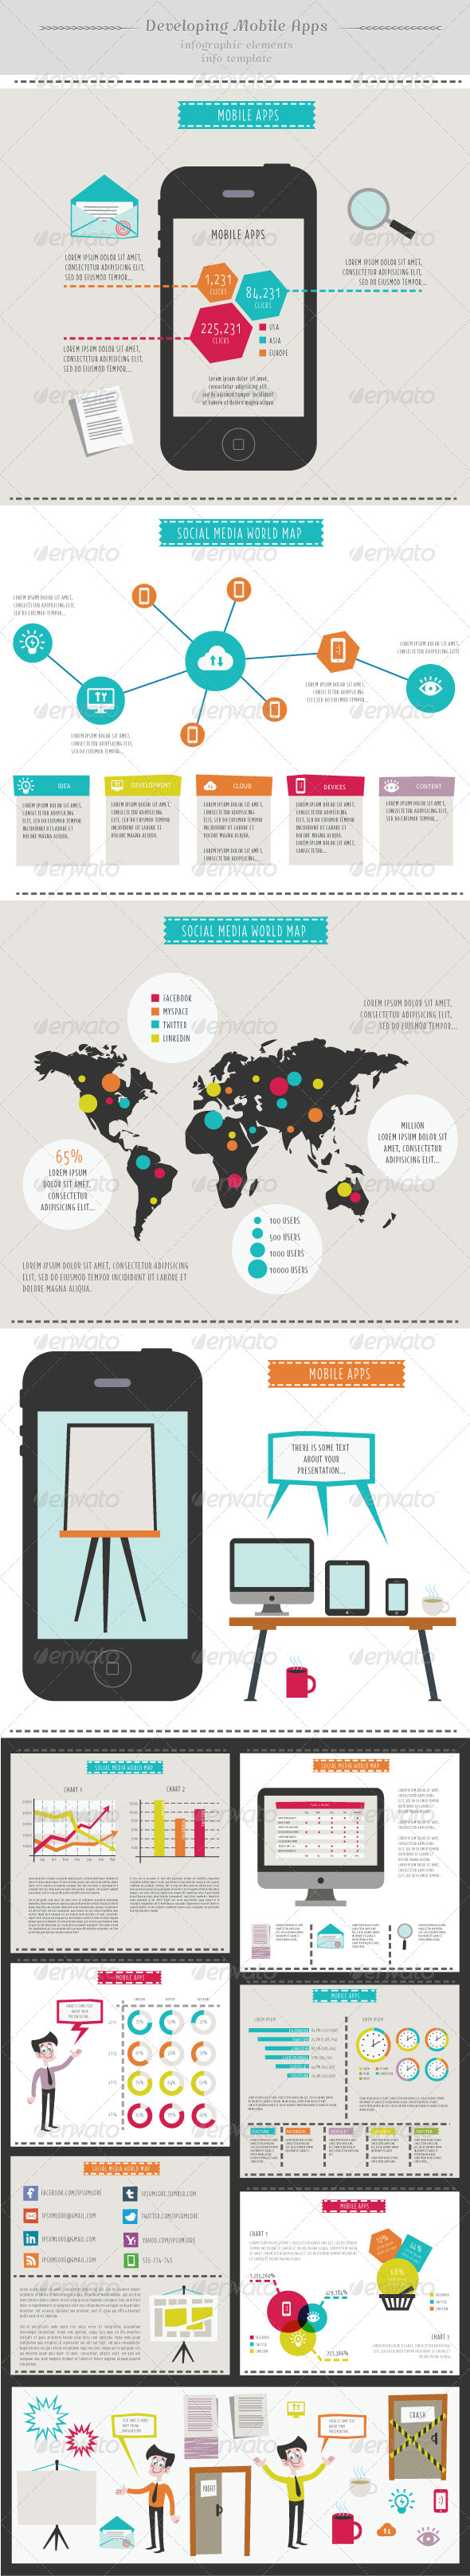 Developing Mobile Apps - Infographic Elements - In - Infographics